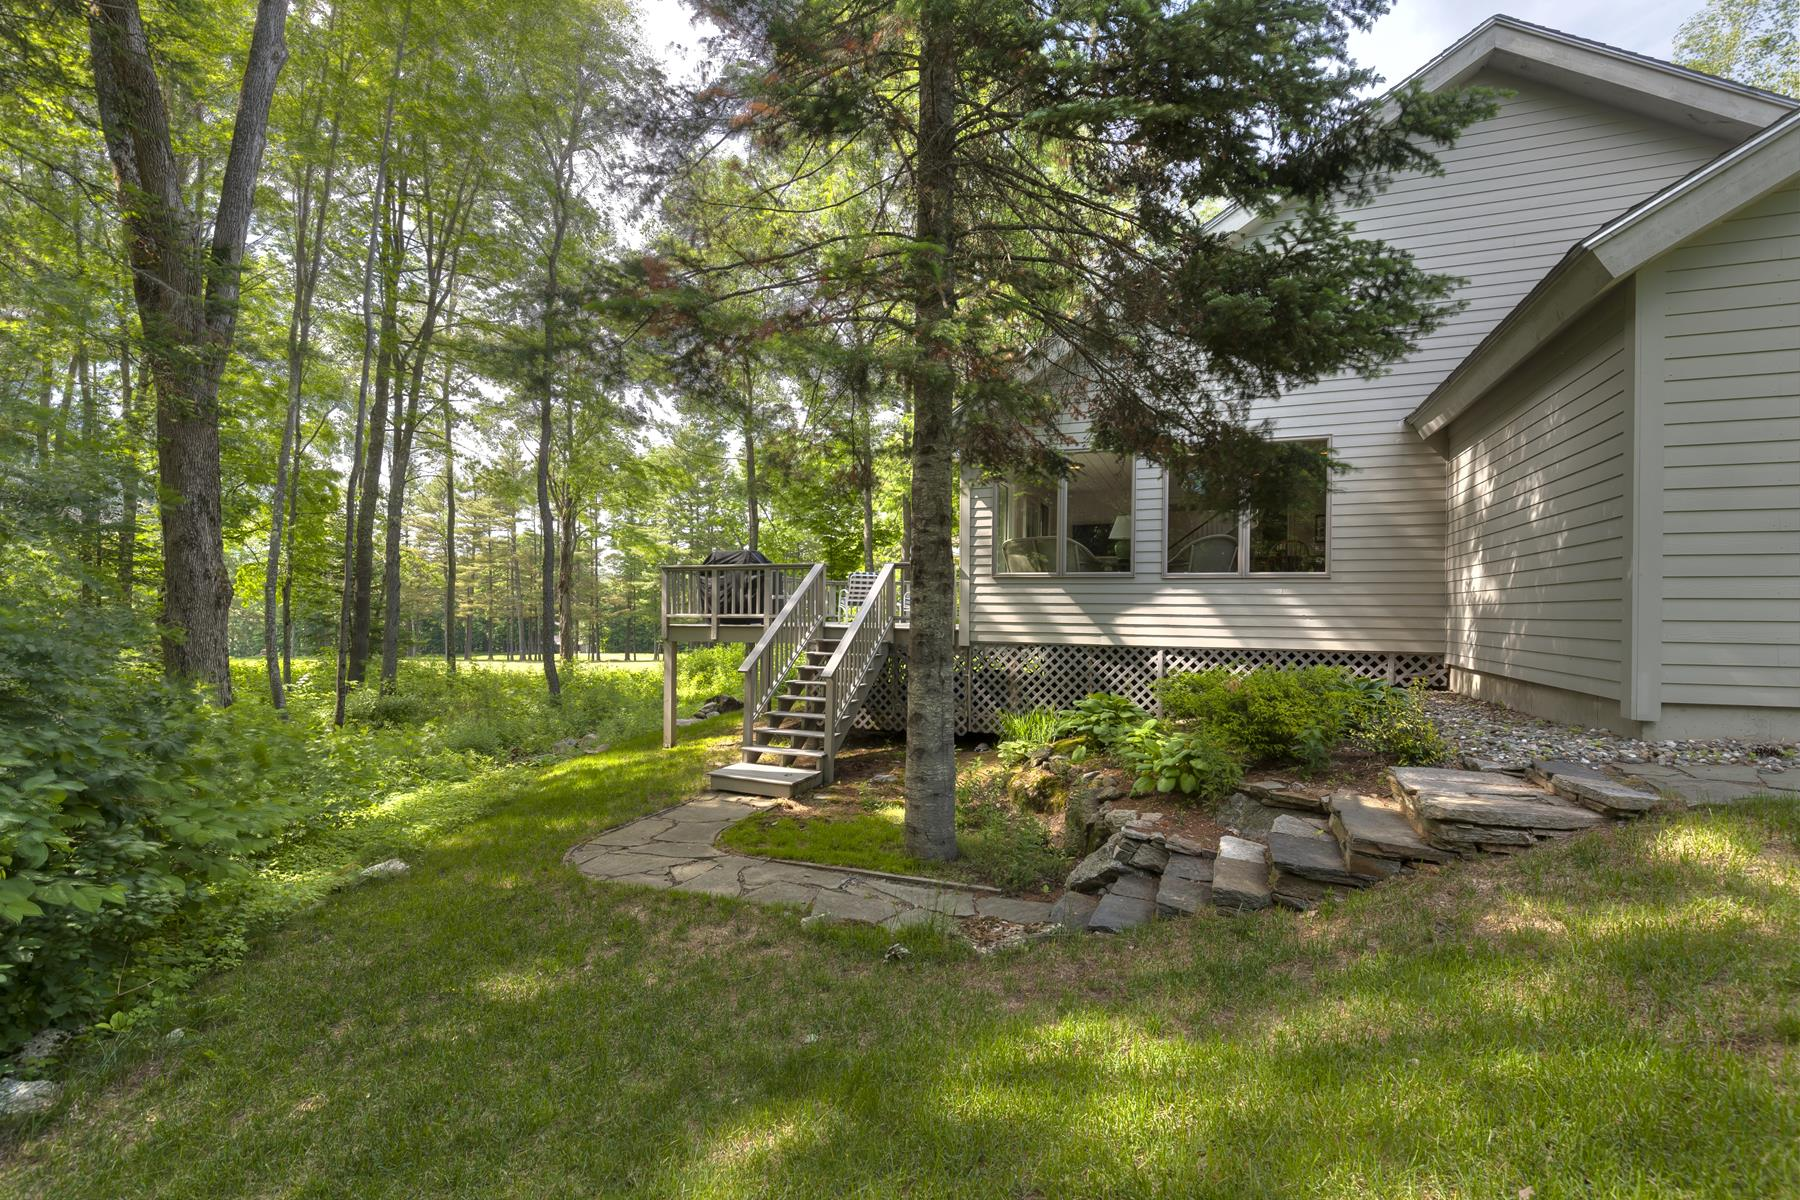 Single Family Home for Sale at 93 Longwood Drive, Grantham Grantham, New Hampshire 03753 United States